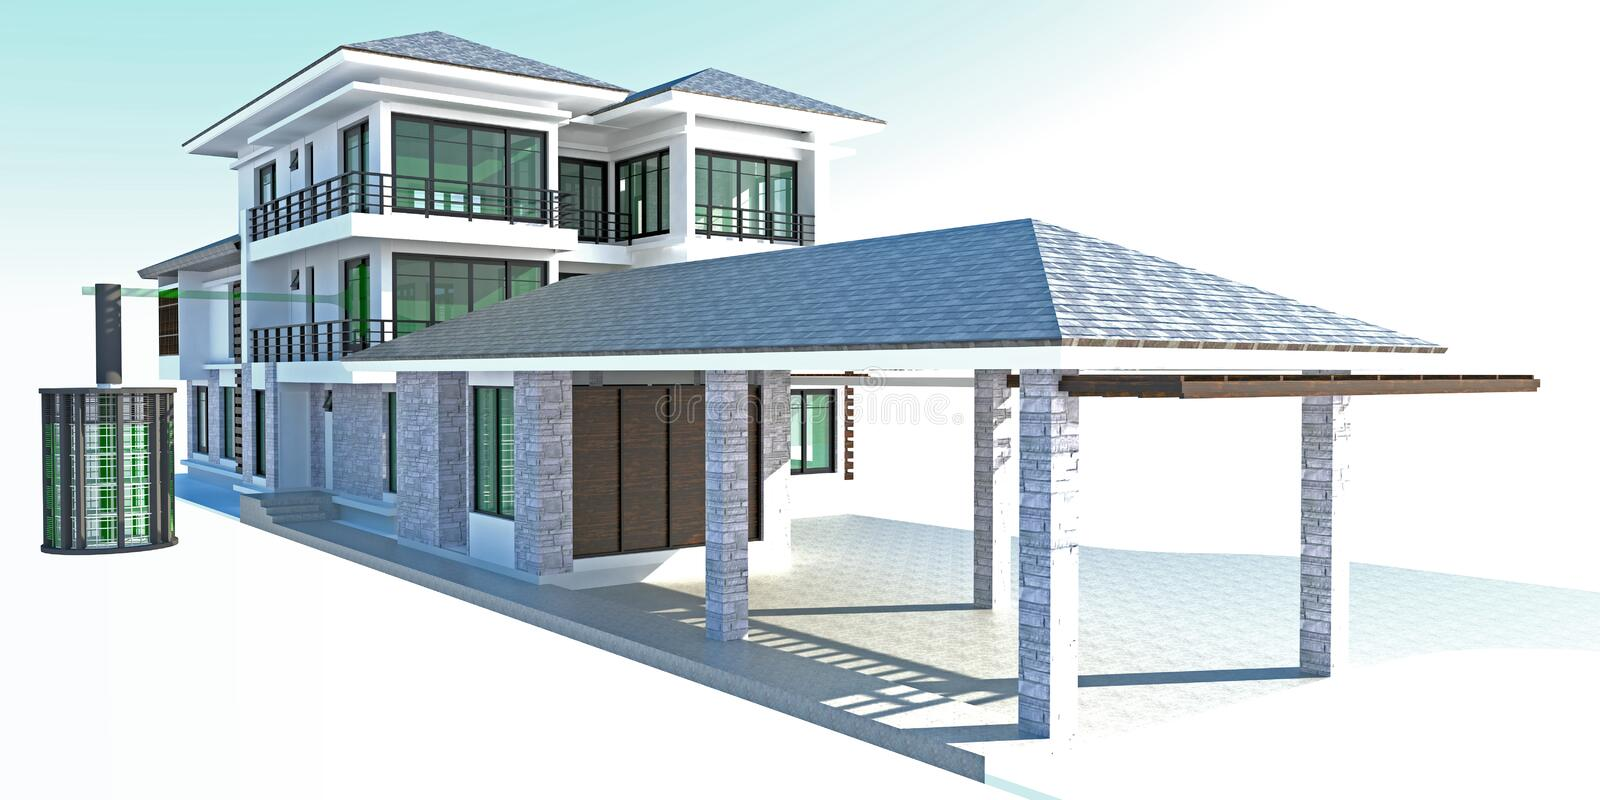 Future residential house with huge outer battery energy source i royalty free illustration